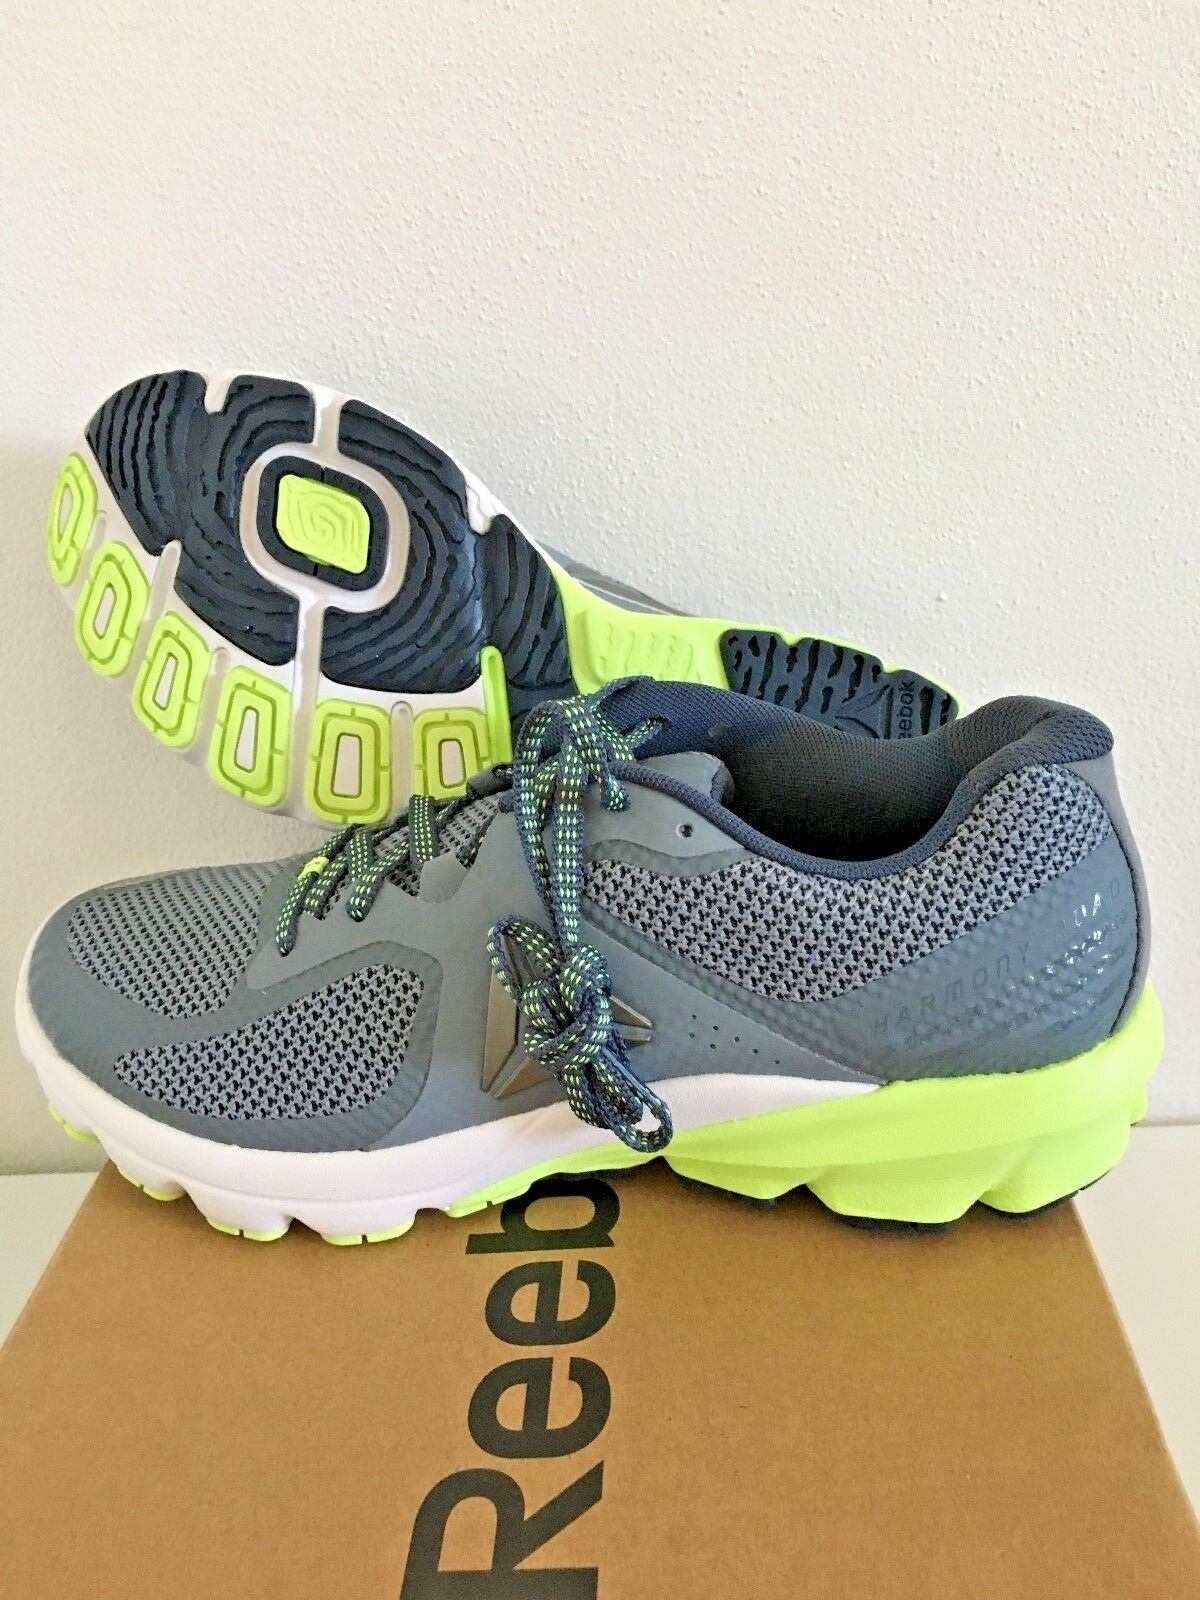 Reebok OSR Harmony Road Men's Running Shoes Dust/Grey/Flash/Indigo Choose Size